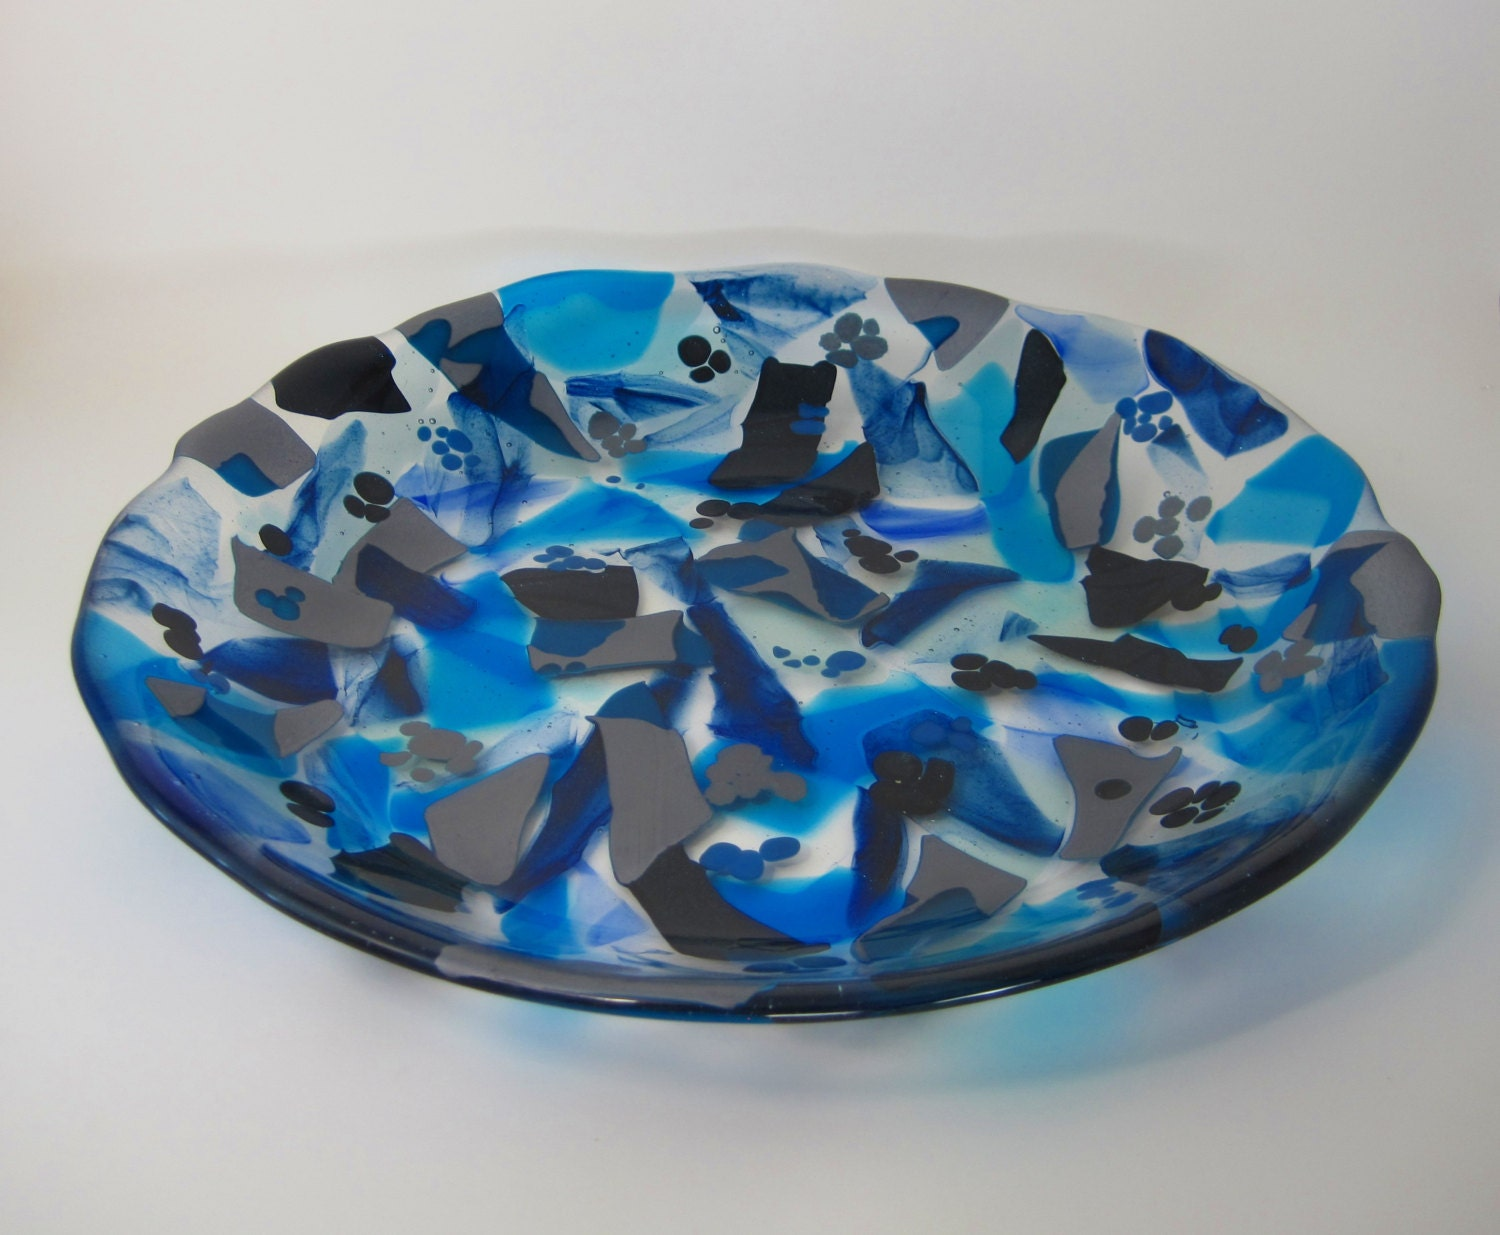 Fused glass large bowl centerpiece by